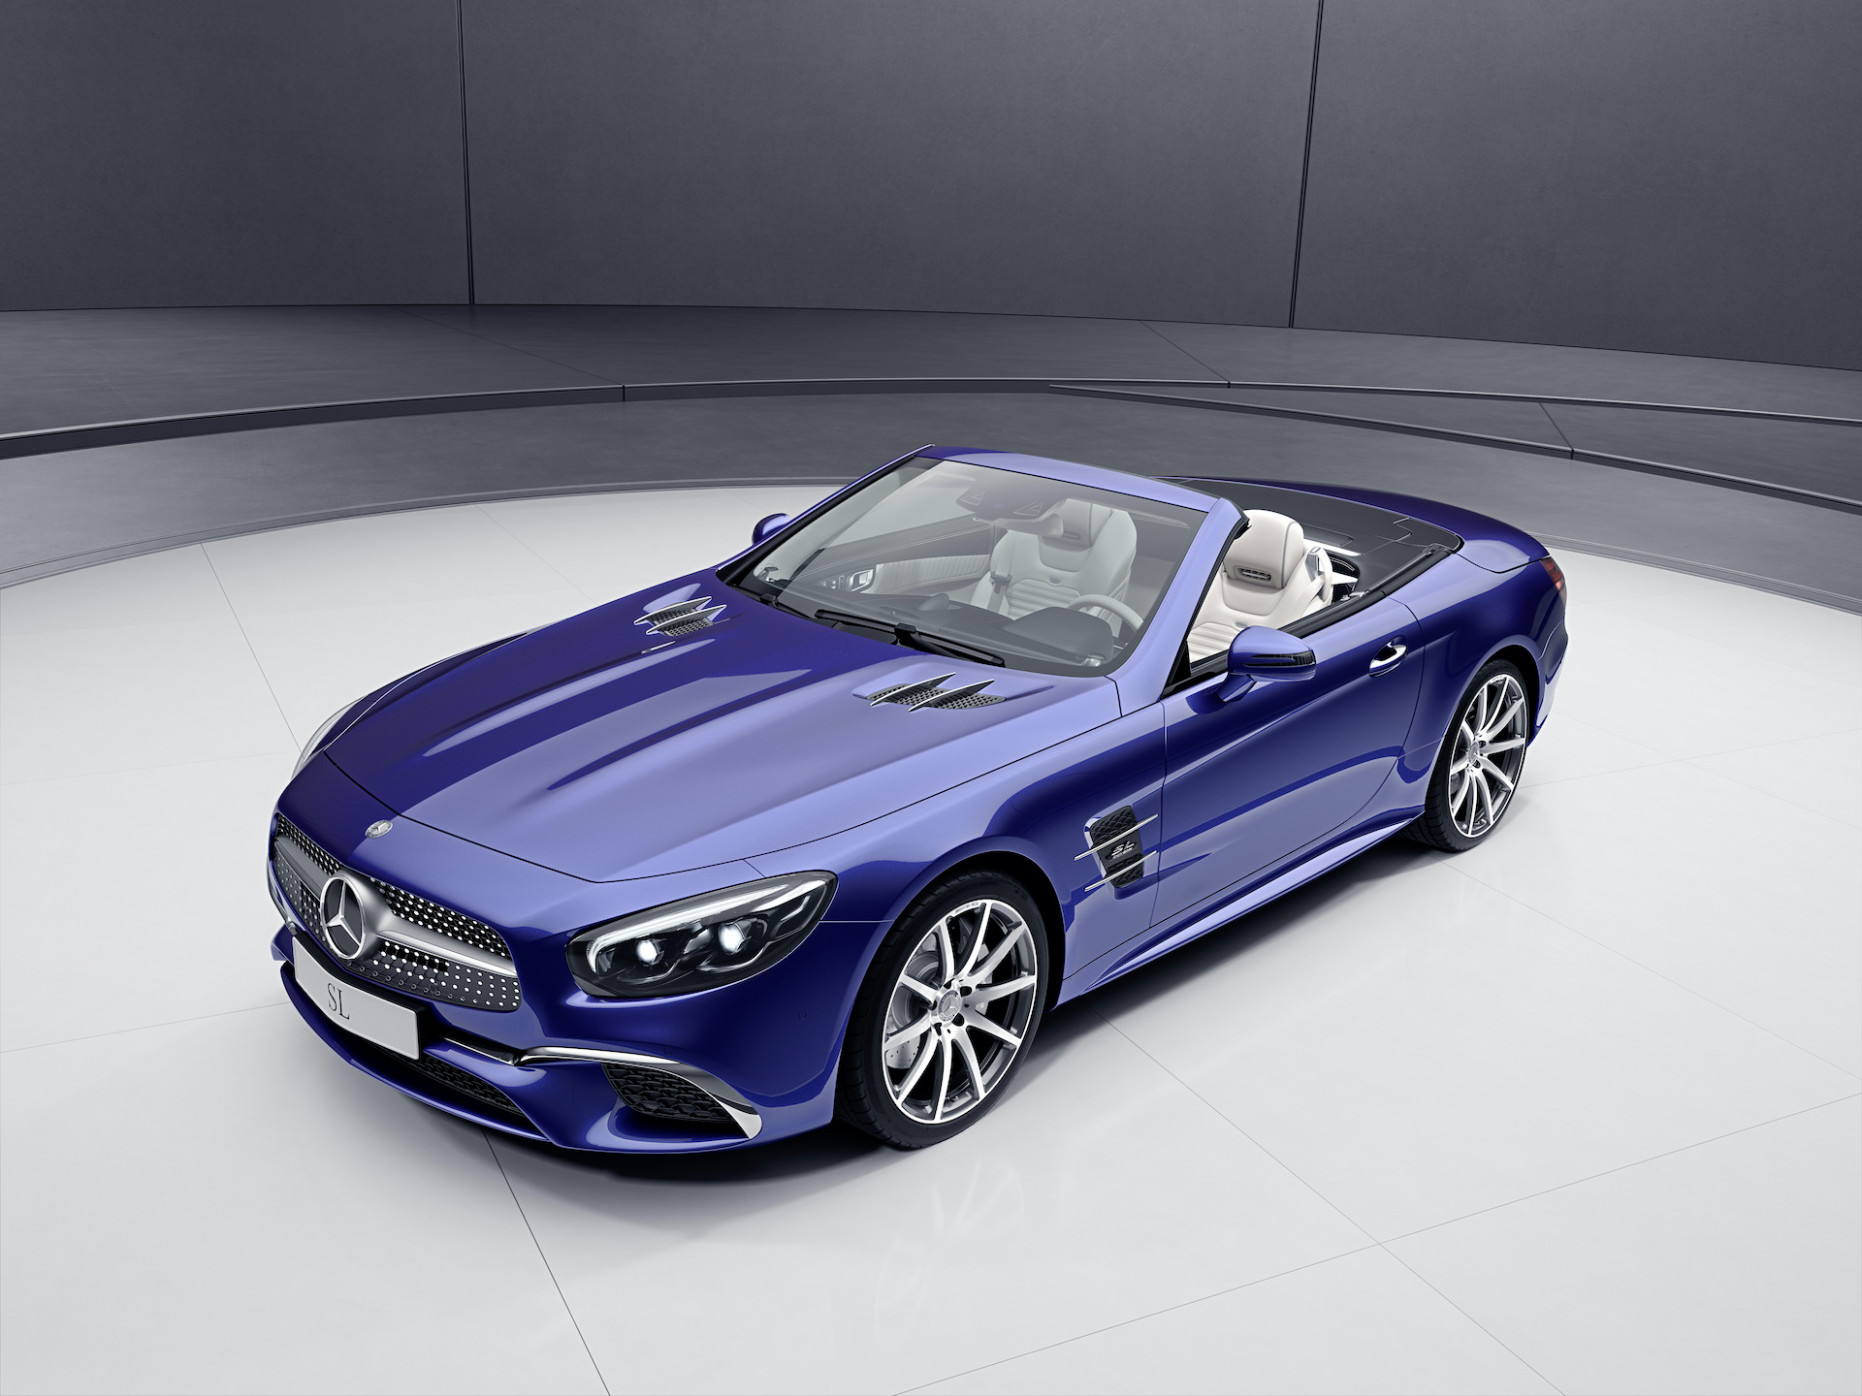 5 Mercedes-Benz SL Class Review, Ratings, Specs, Prices, and ..